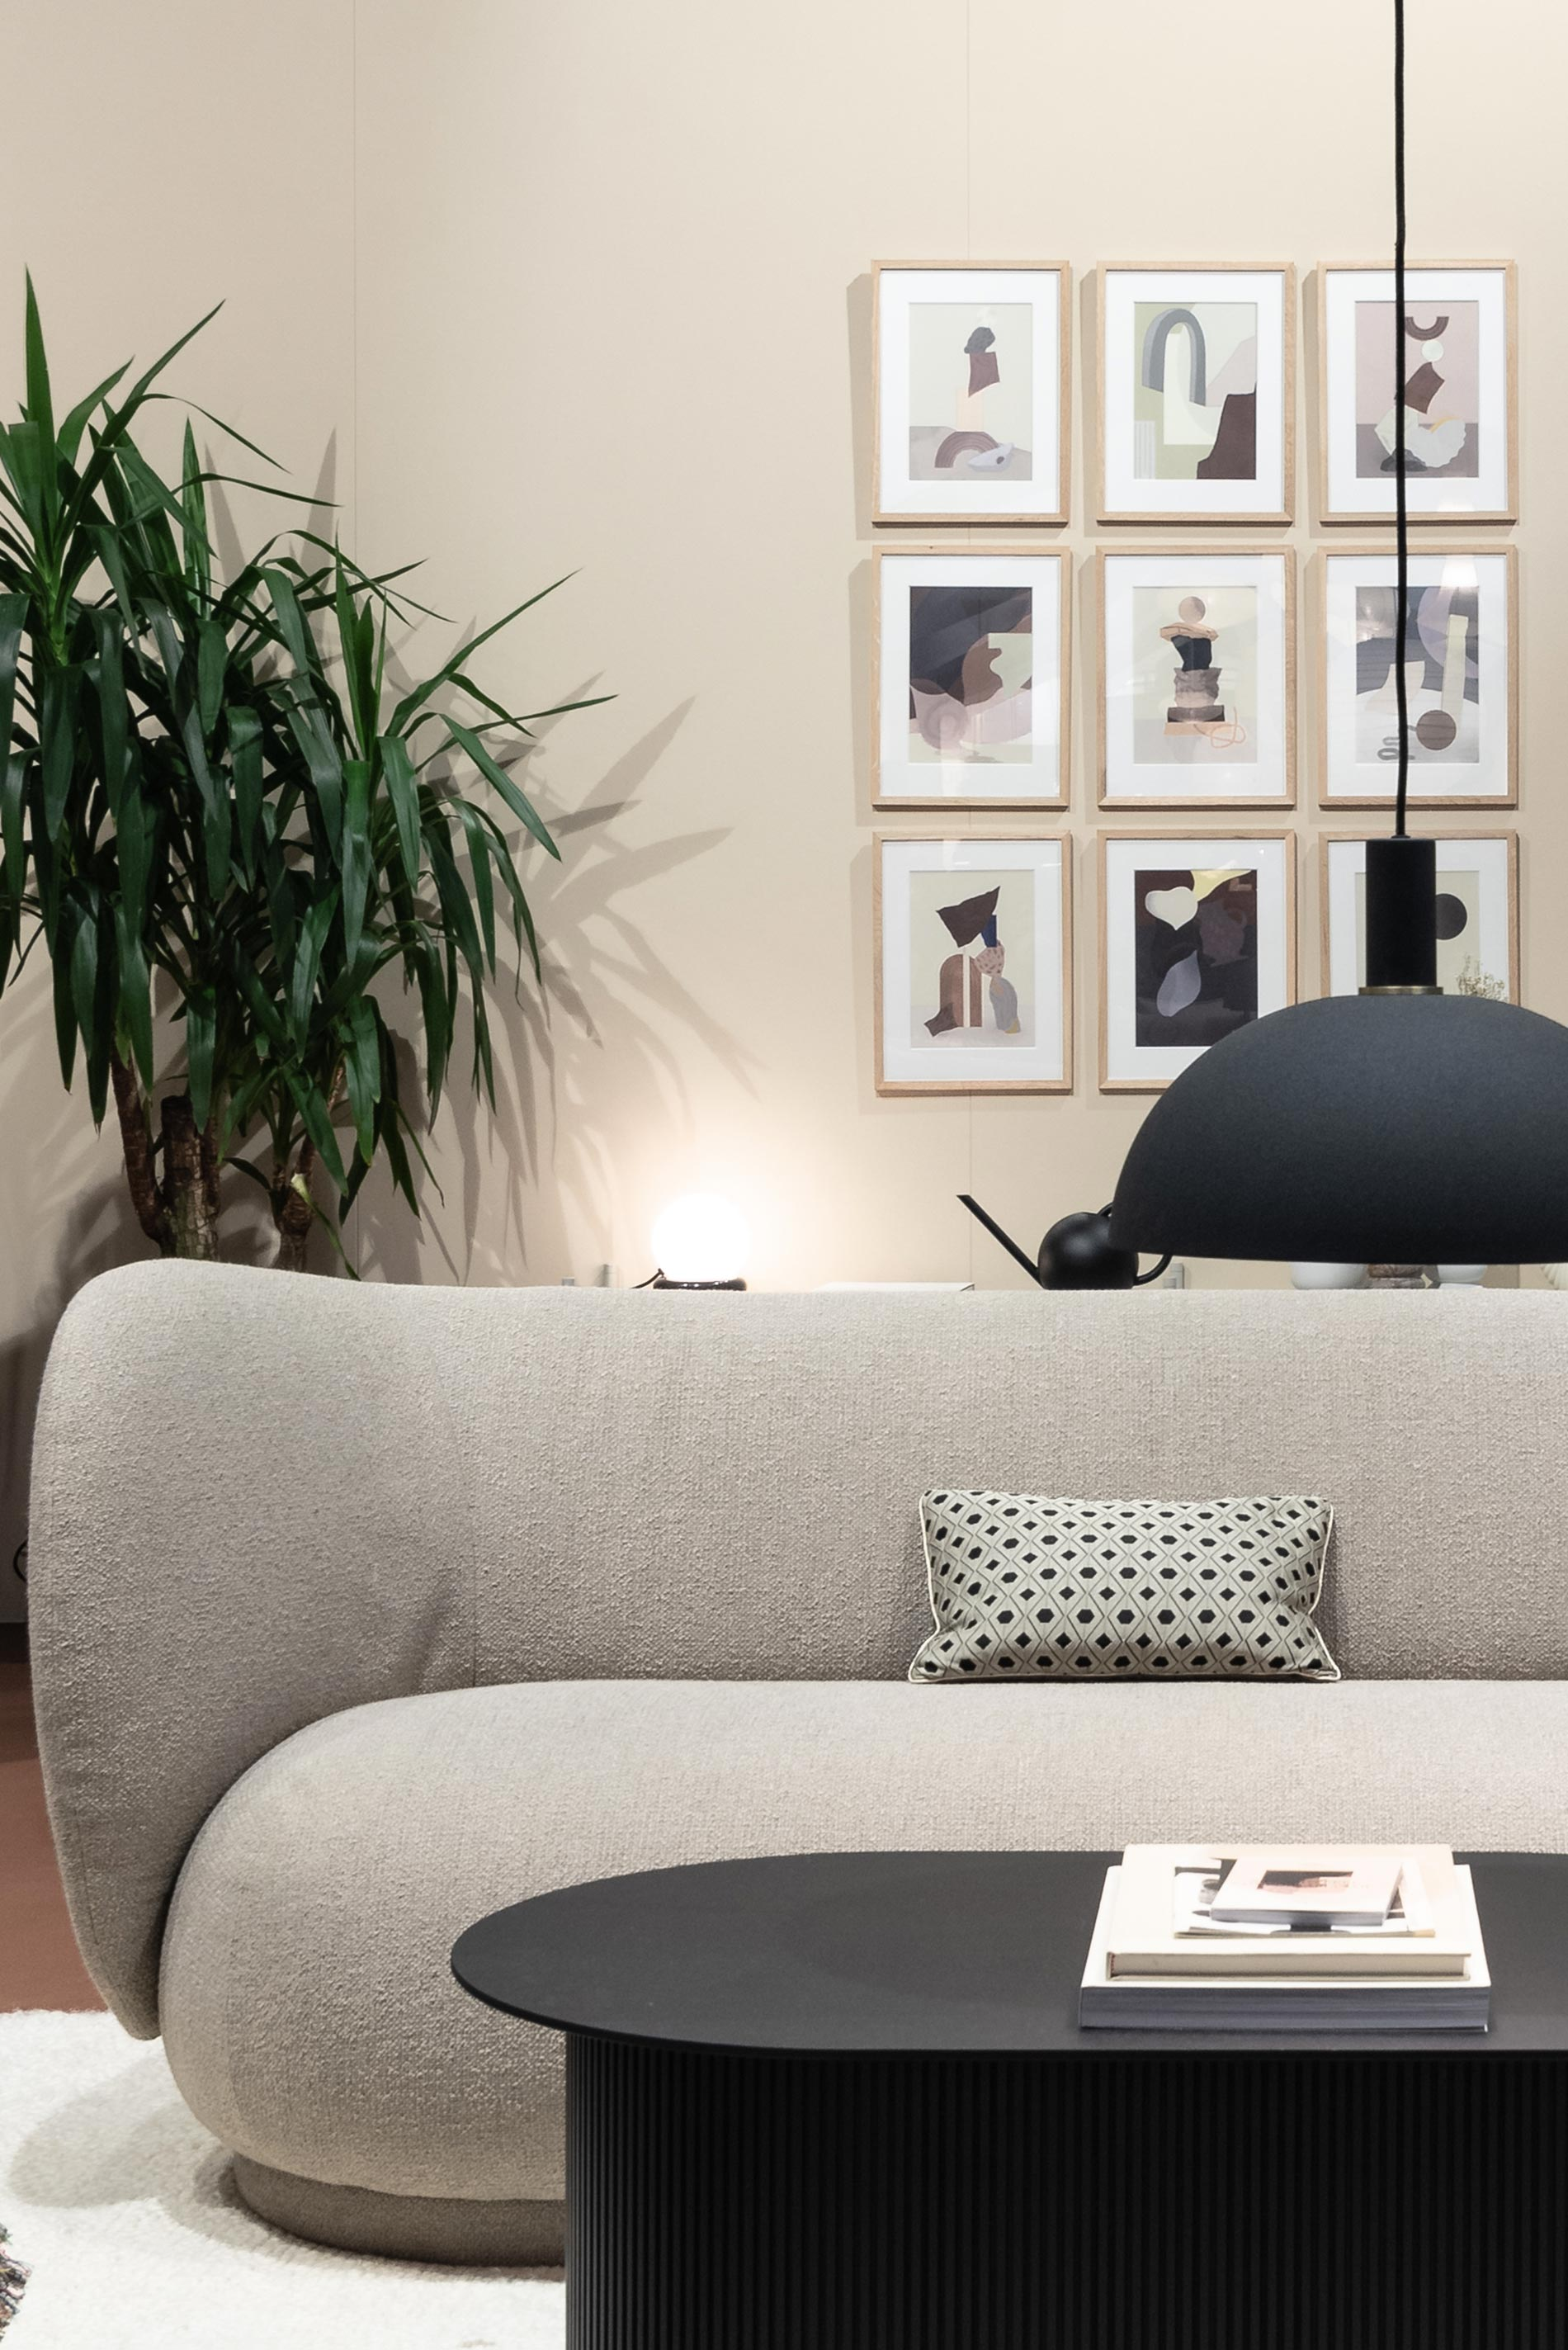 grounded sofas trend 2020 imm cologne 2019